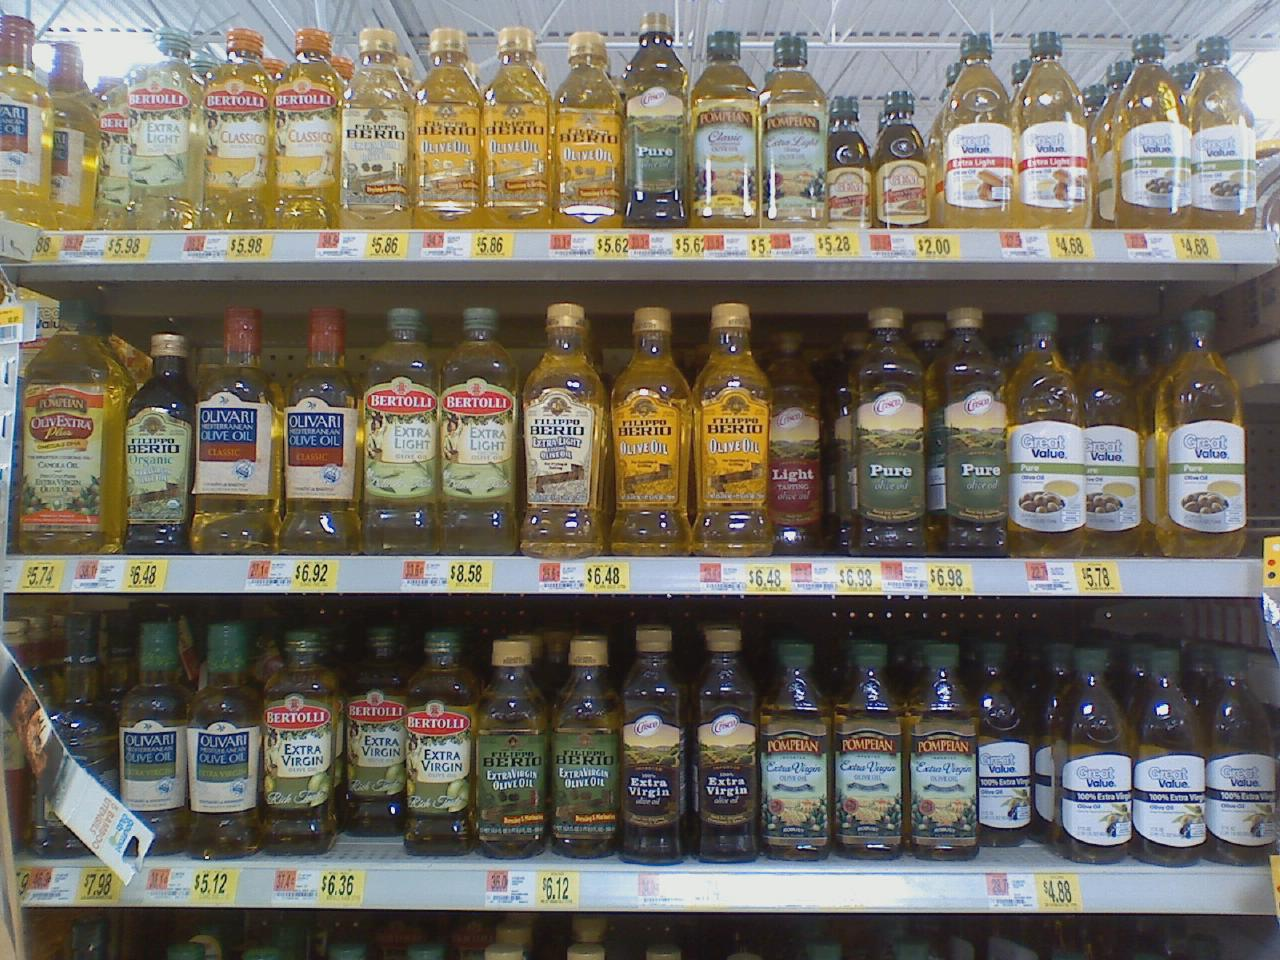 Olive OIl bottles on a store shelf